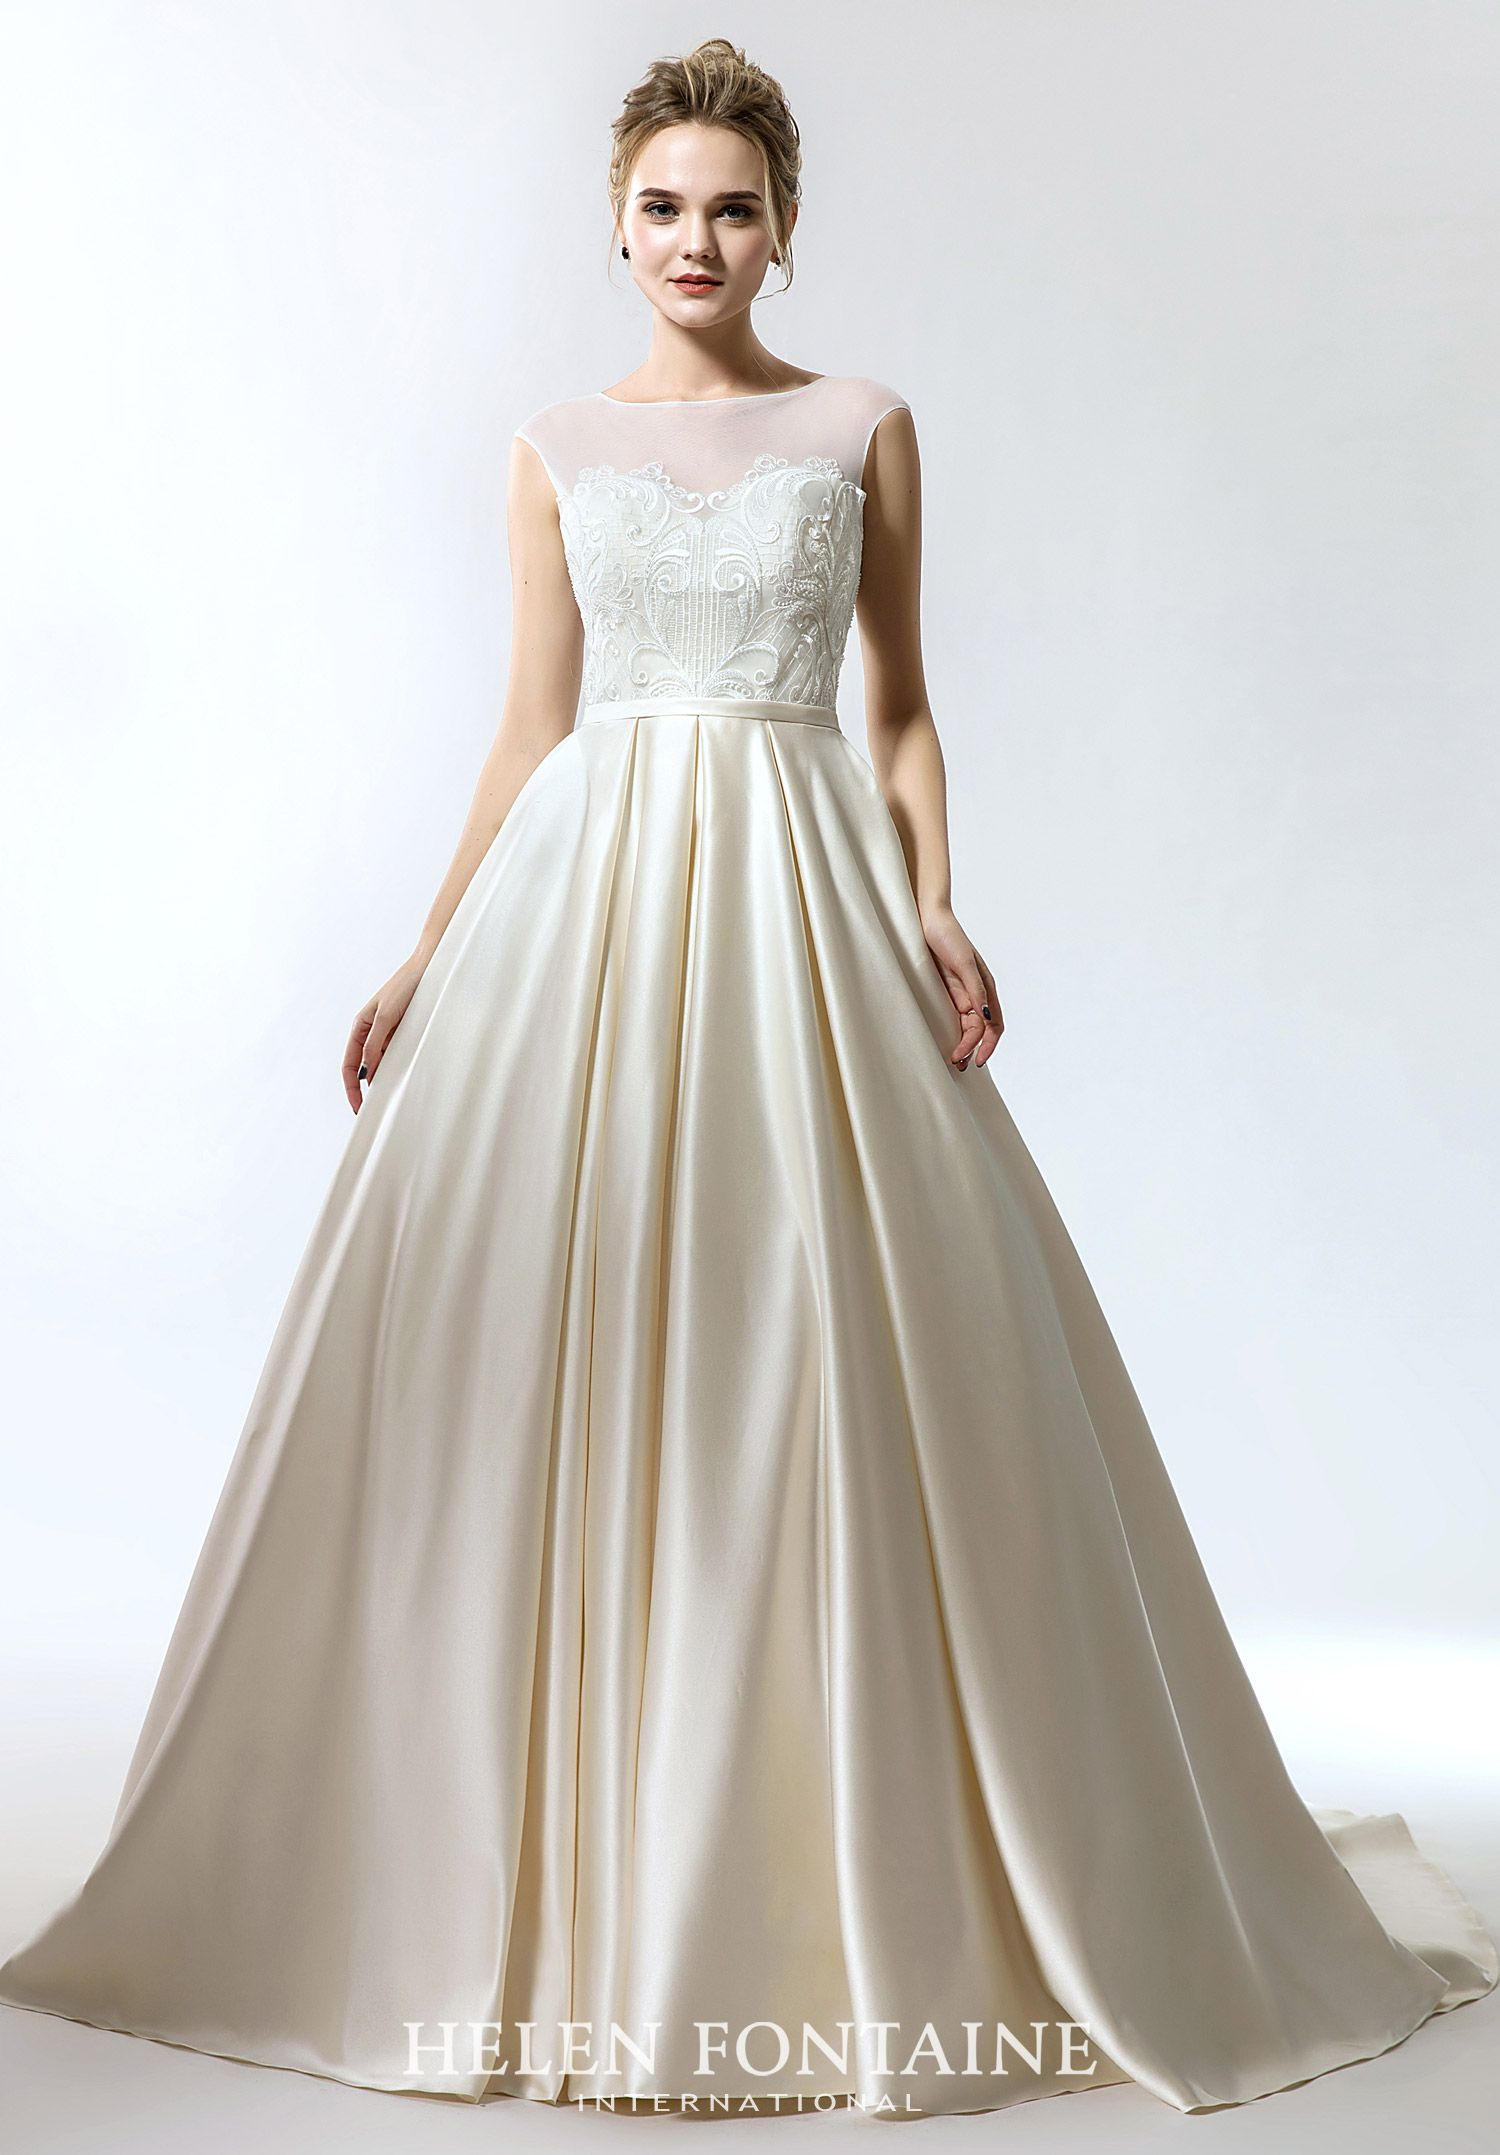 Helen Fontaine Style 4121 Dessy bridesmaid dresses